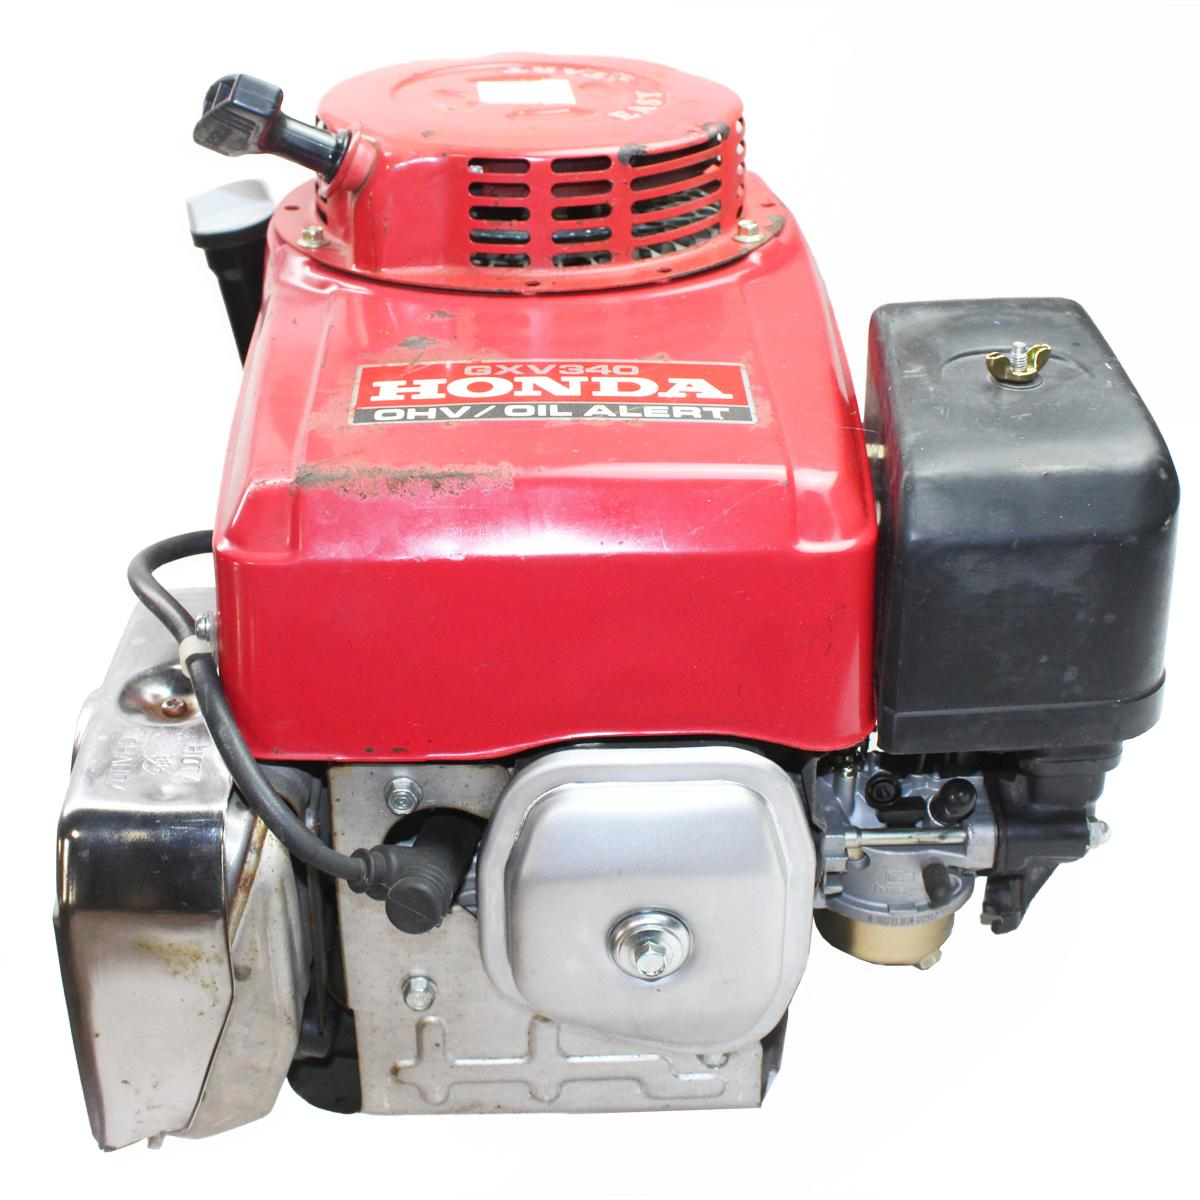 Snapper Rear Engine Rider Repower